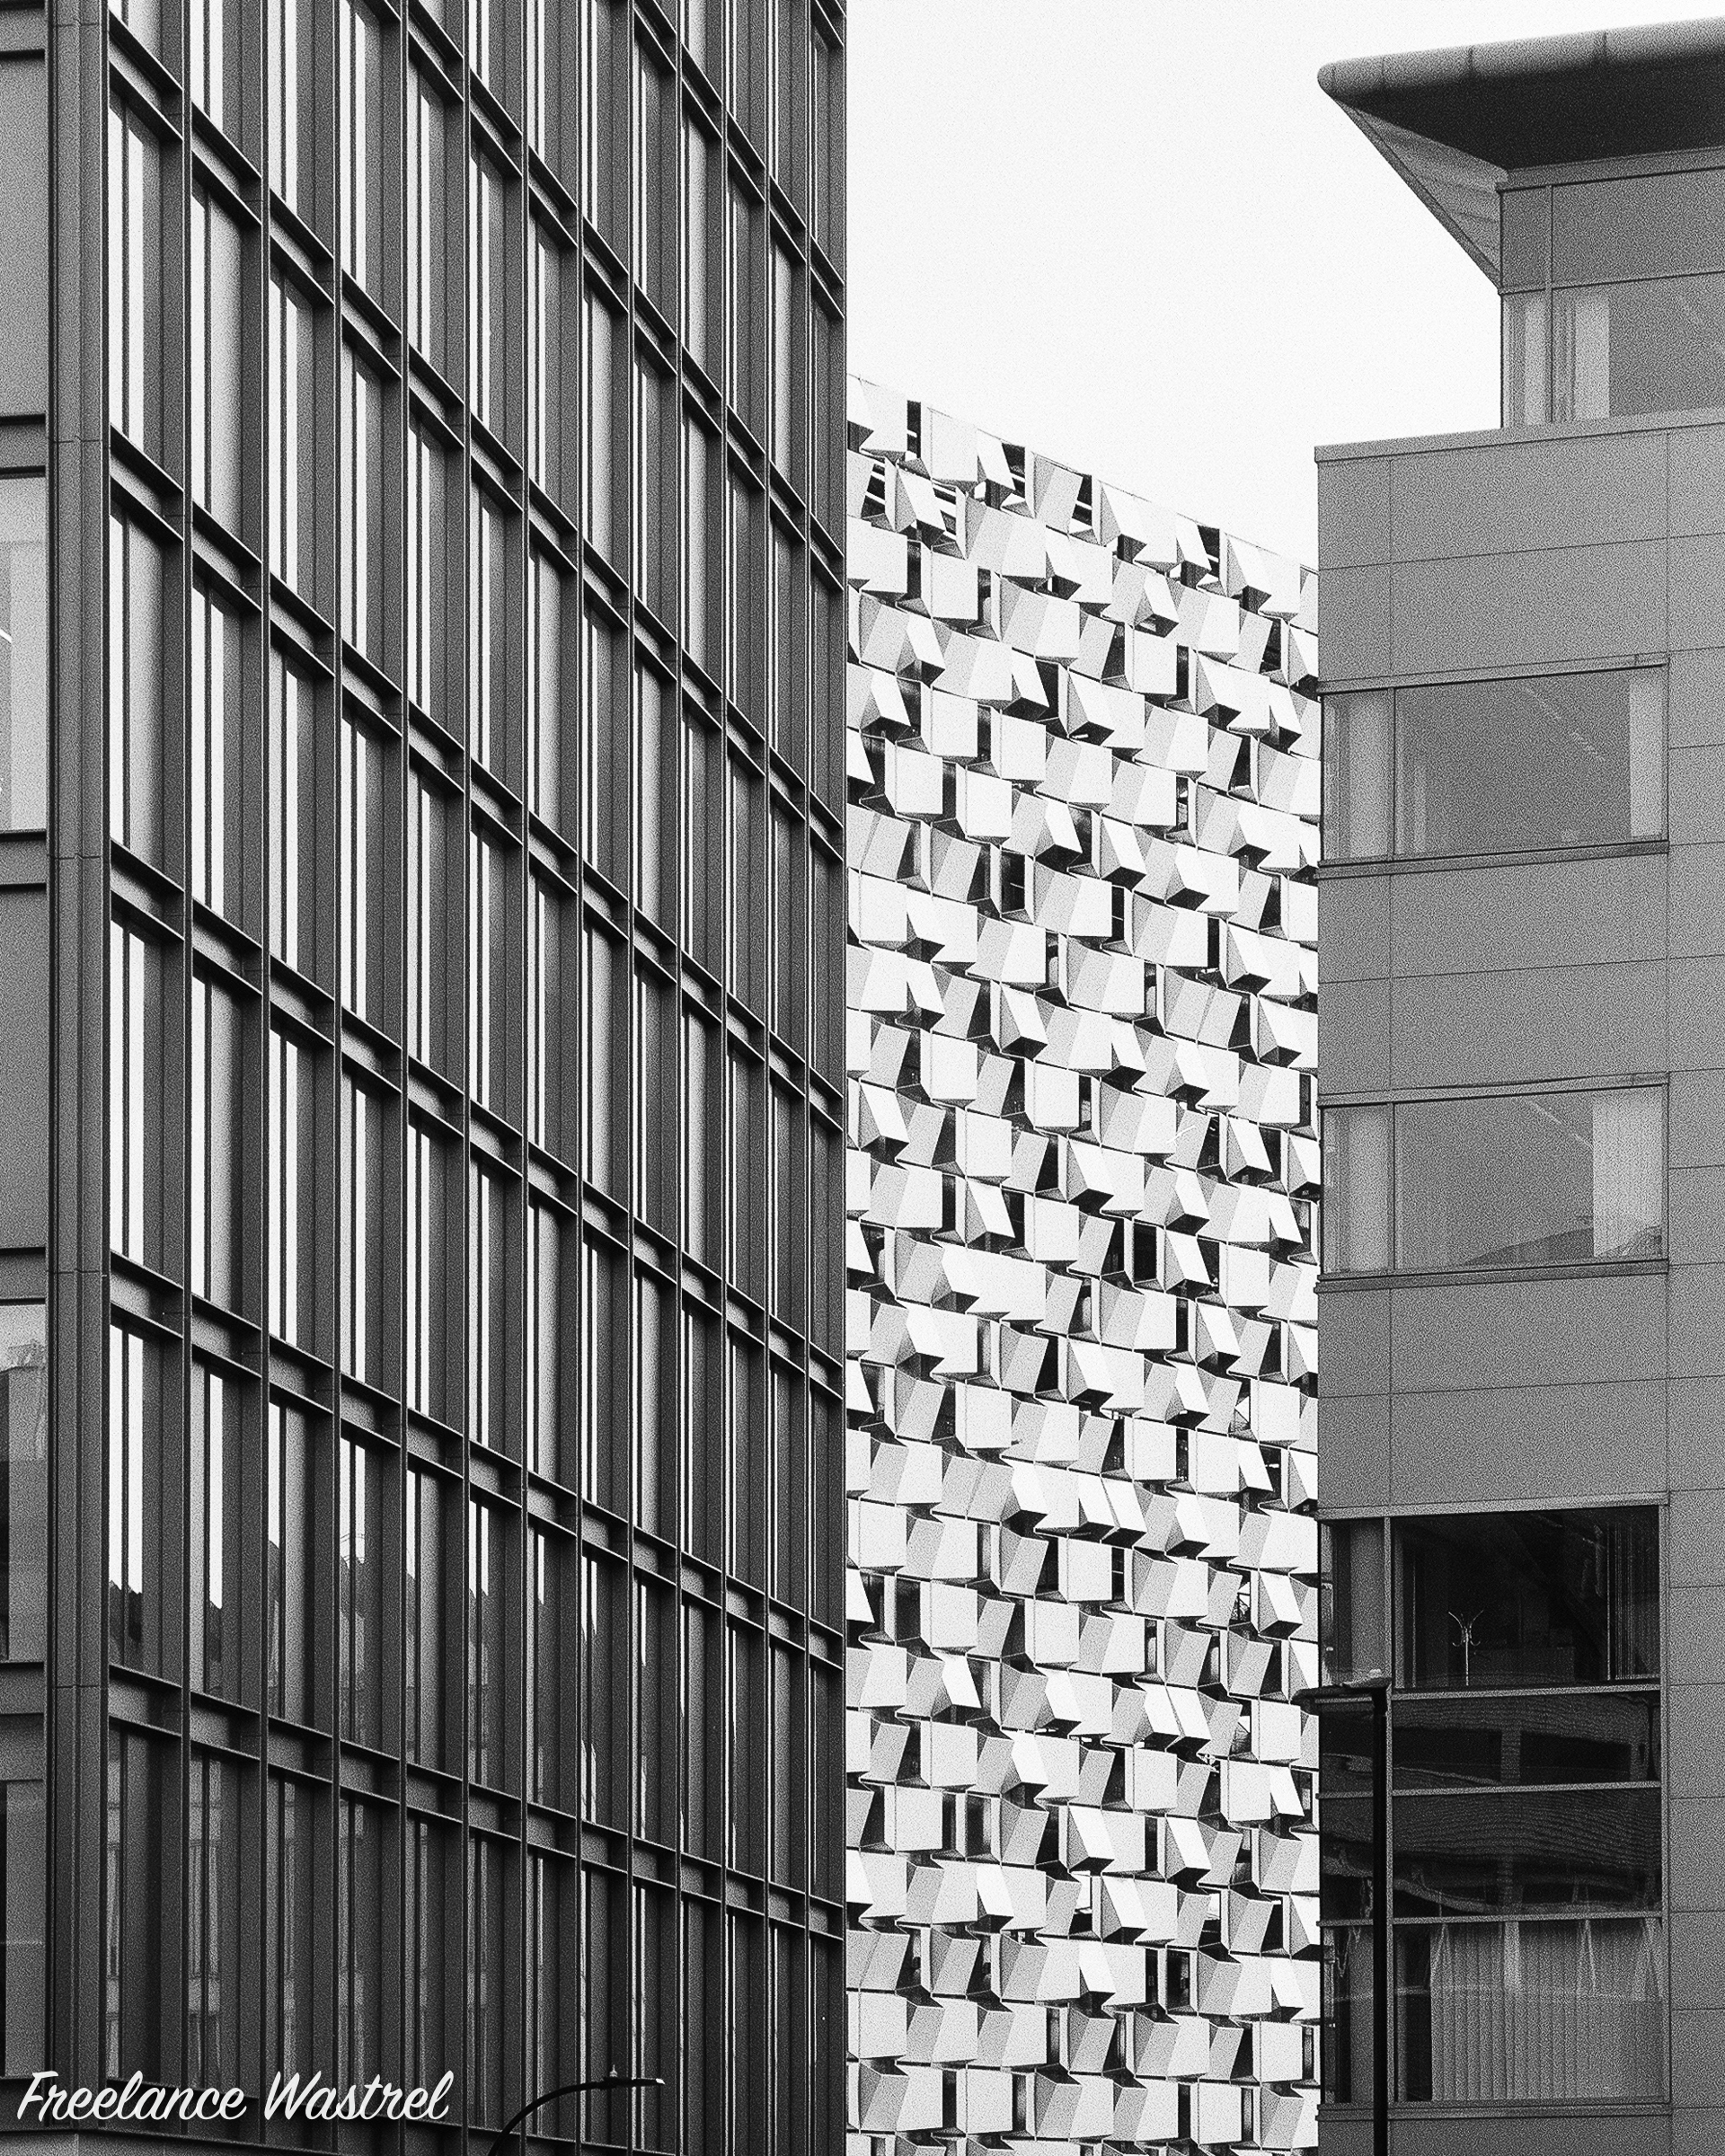 Sheffield's 'Cheese Grater'